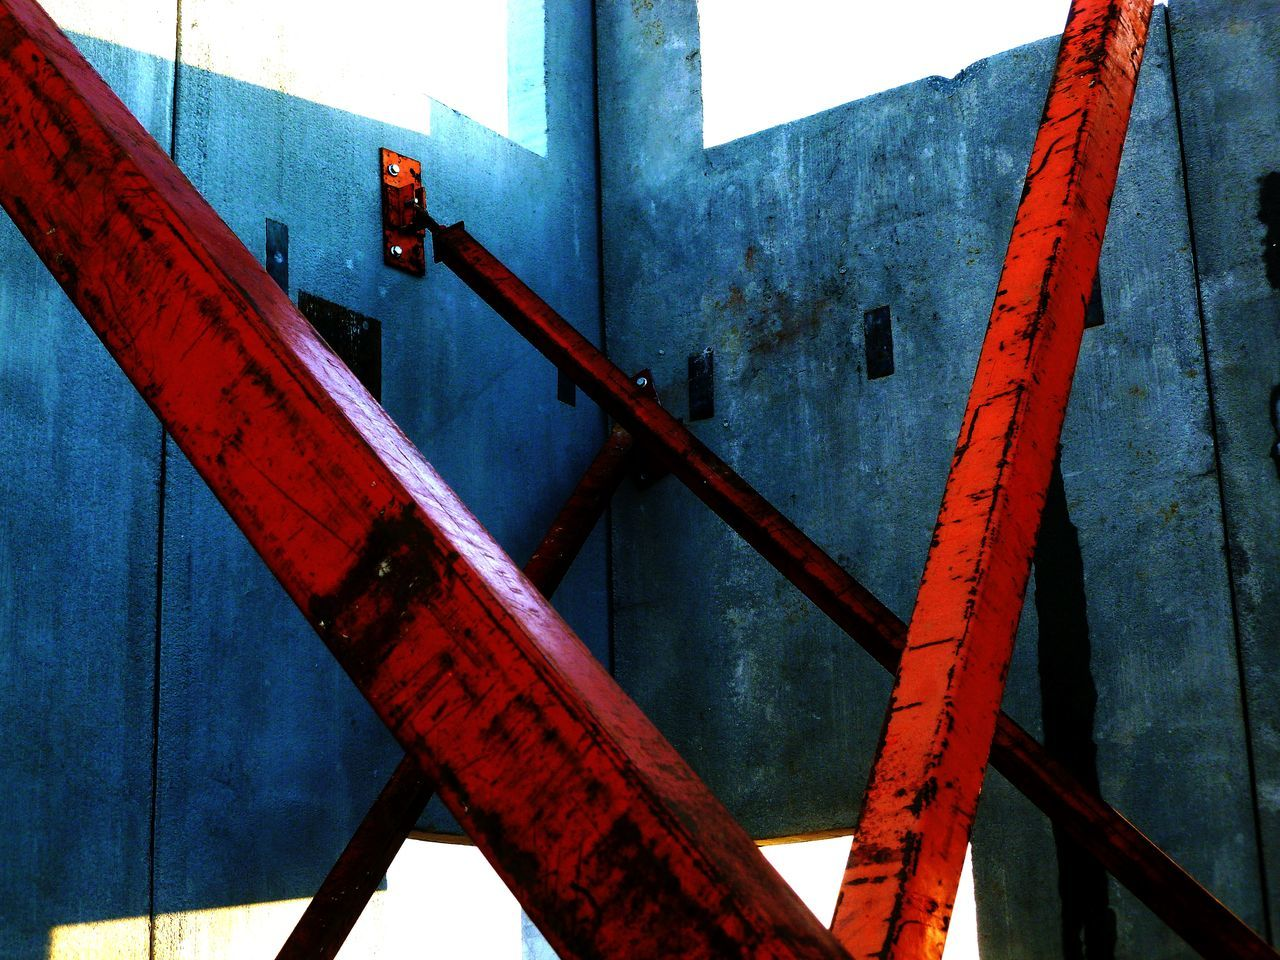 STRENGTH Blue Walls Building System CONCRETE WALL SUPPORT Concrete Walls RUSTED RED METAL Sky And Clouds Architecture Built Structure Close-up Connection Girder Metal Structural Pattern Windows And Doors